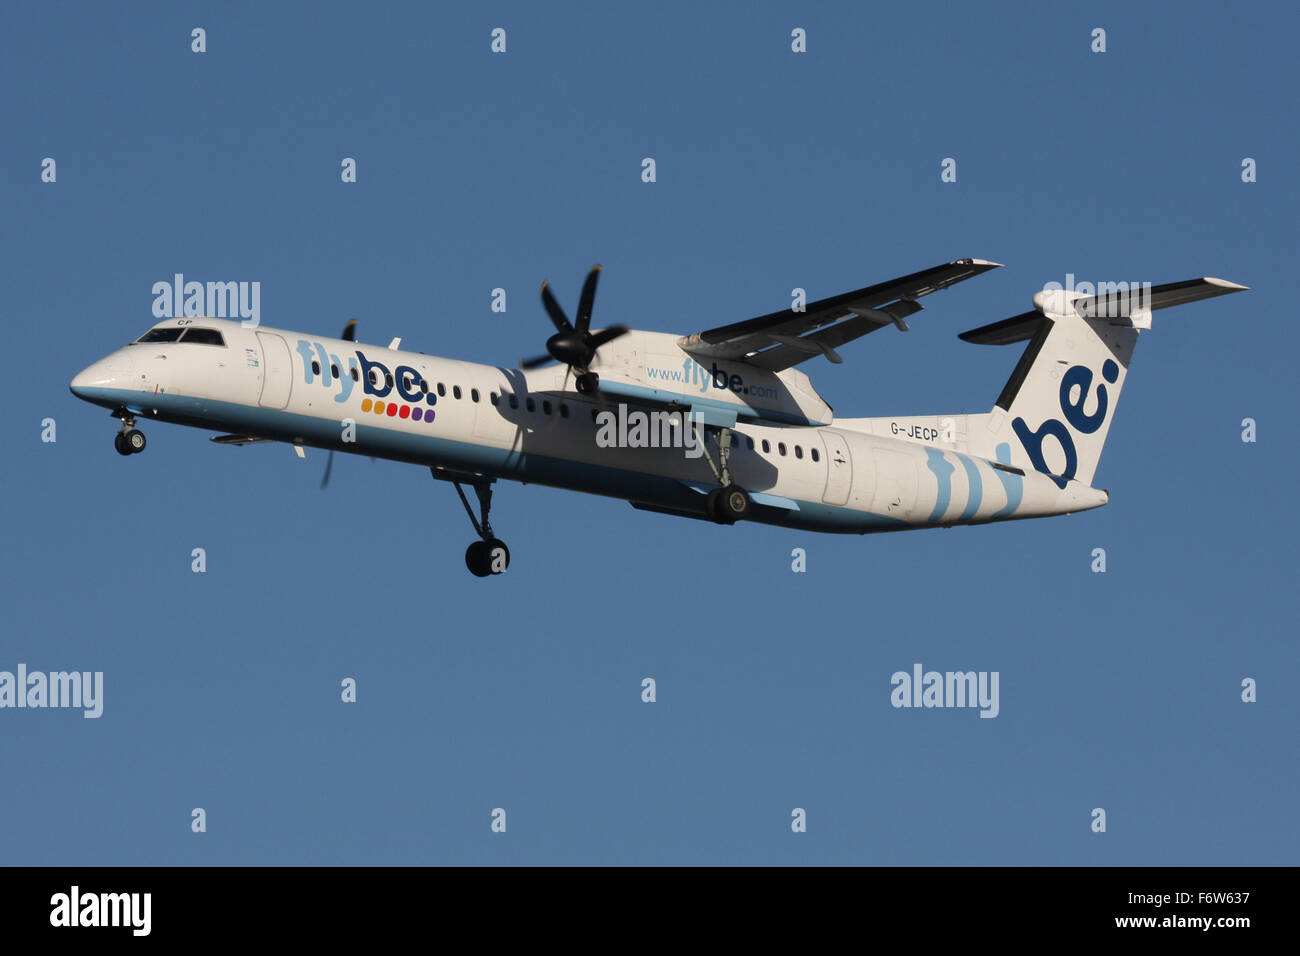 FLYBE DHC8 400 Q400 - Stock Image